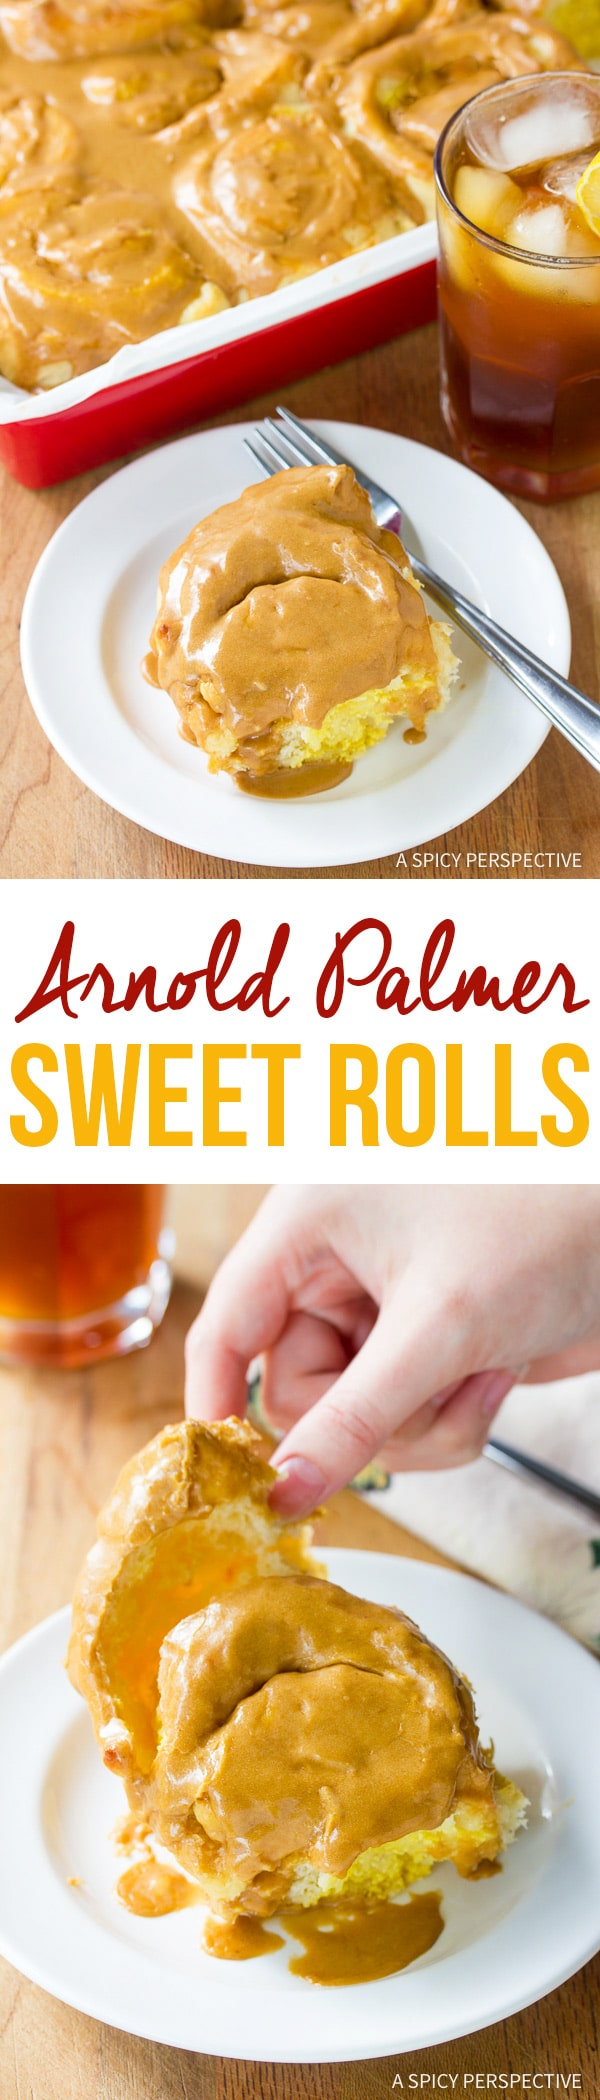 Amazing Arnold Palmer Sweet Rolls Recipe